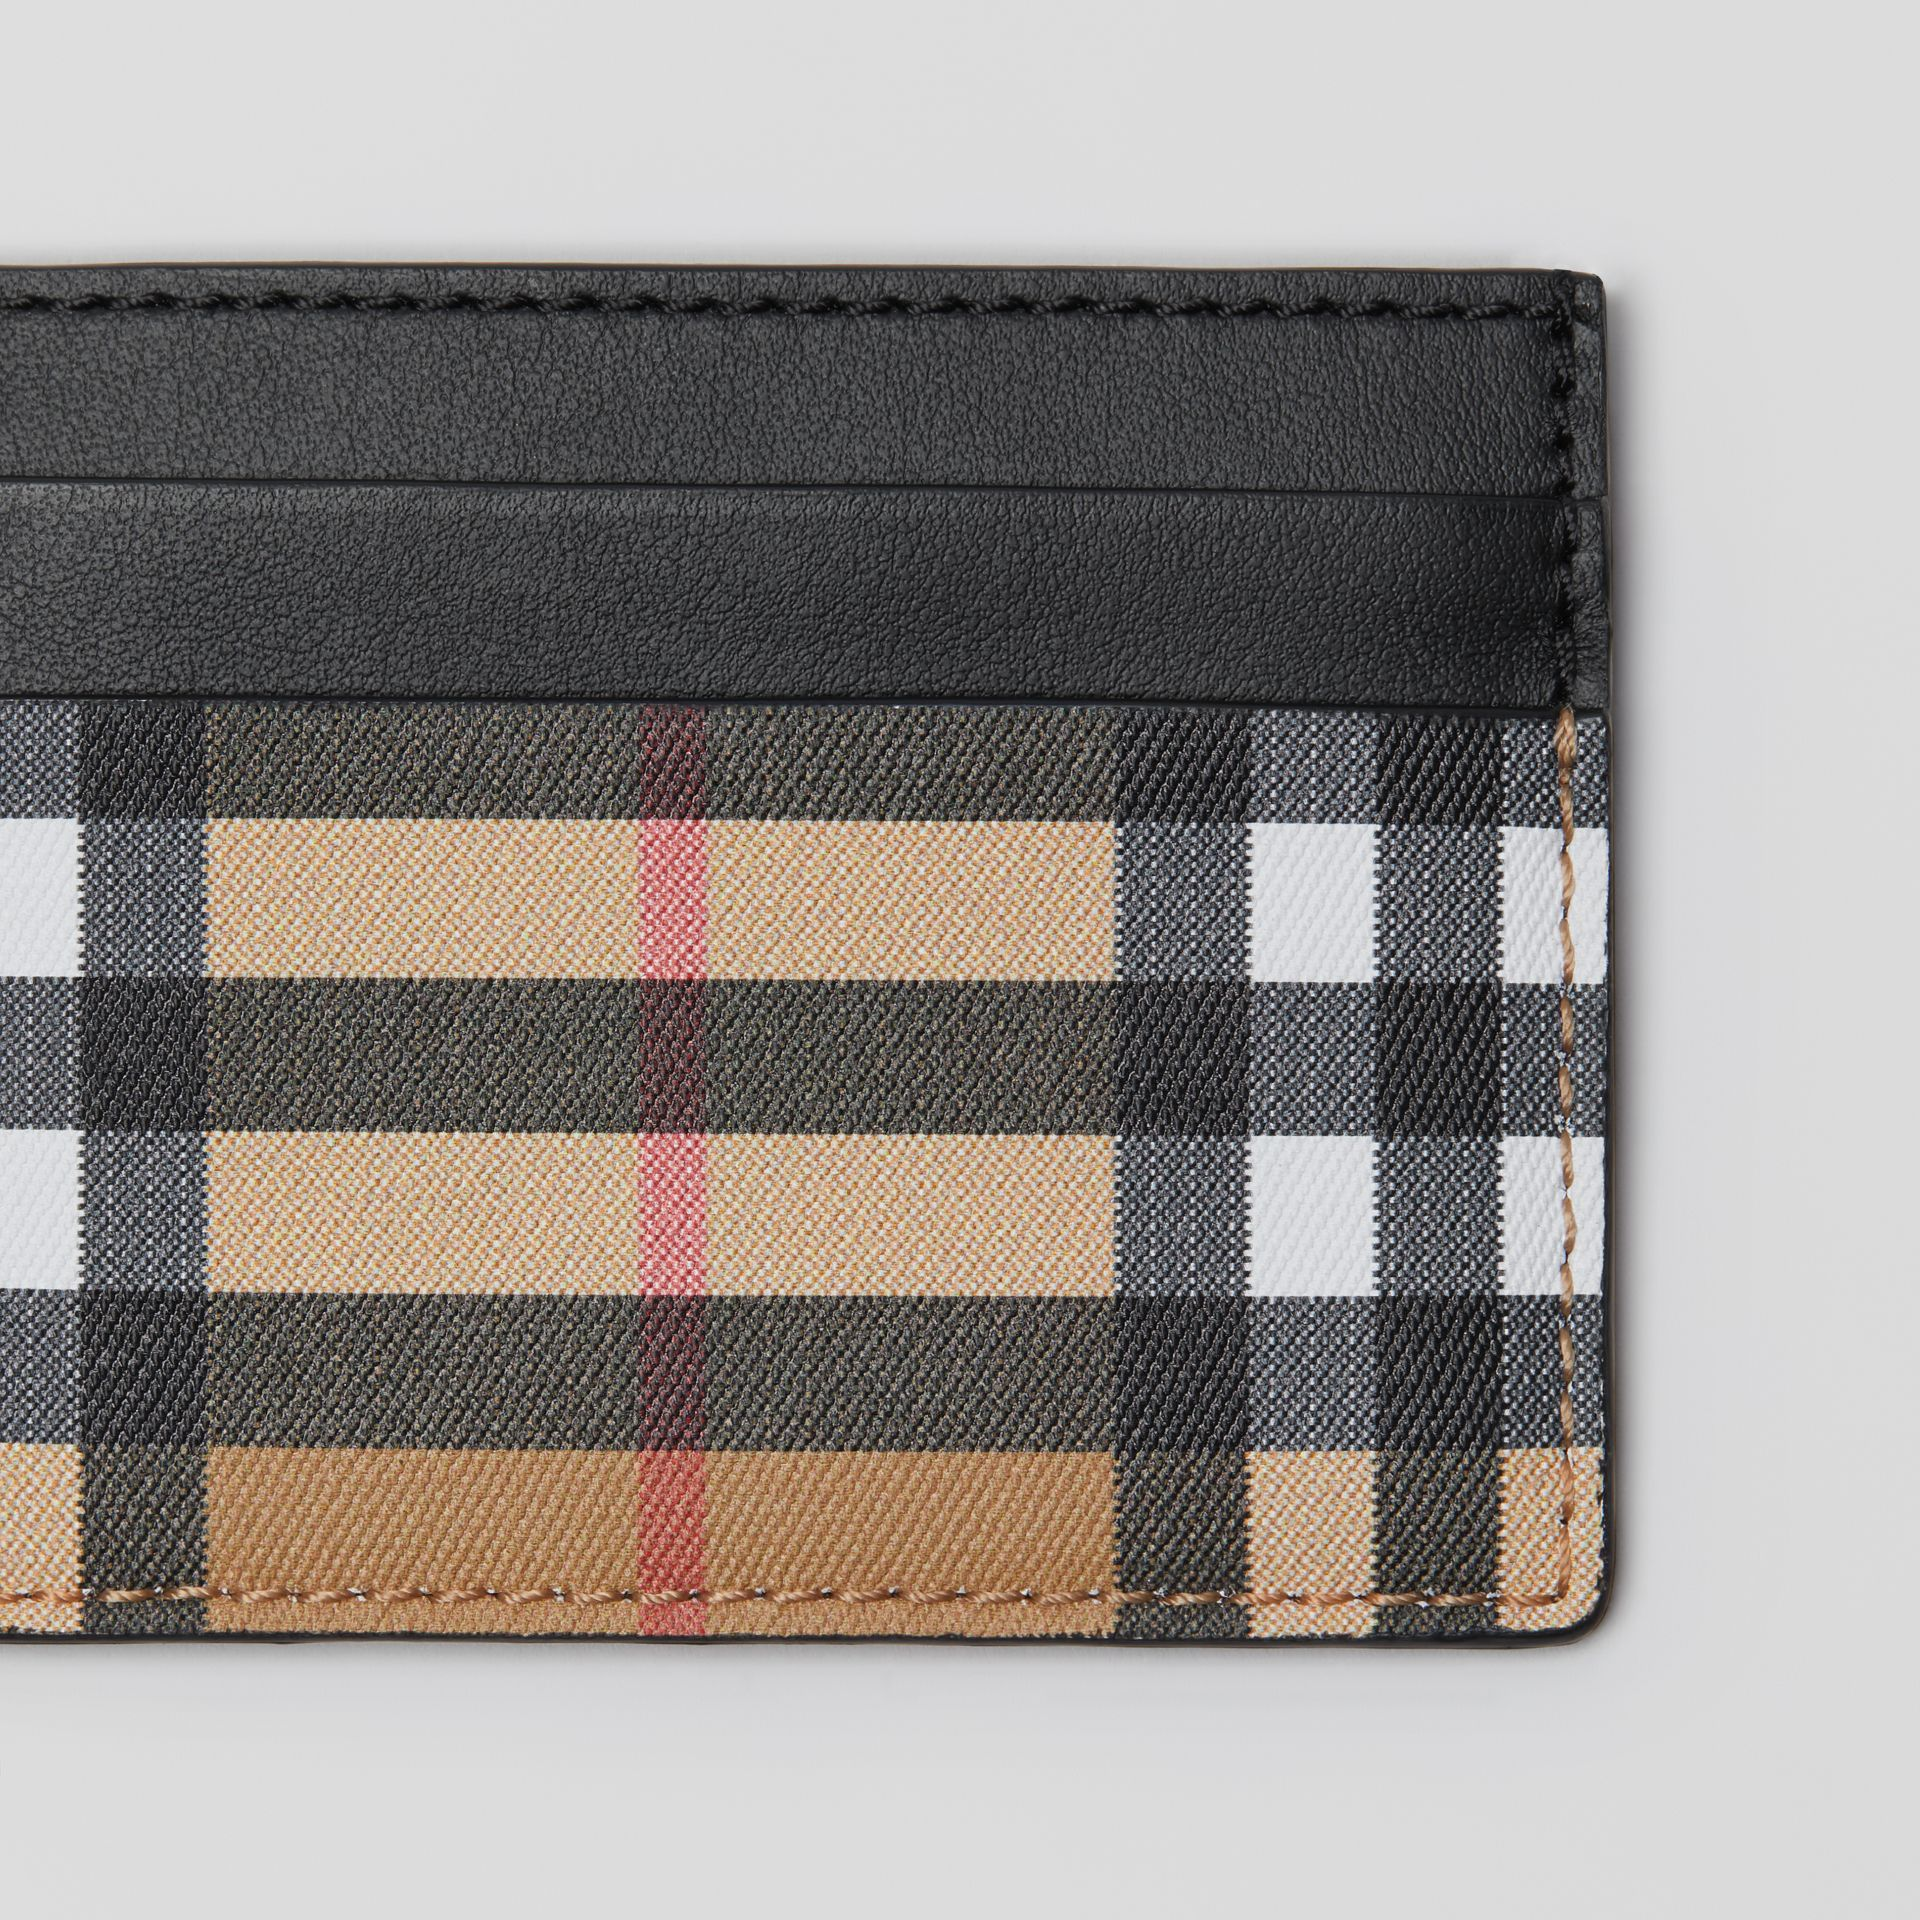 Vintage Check Leather Card Case in Black | Burberry Canada - gallery image 1